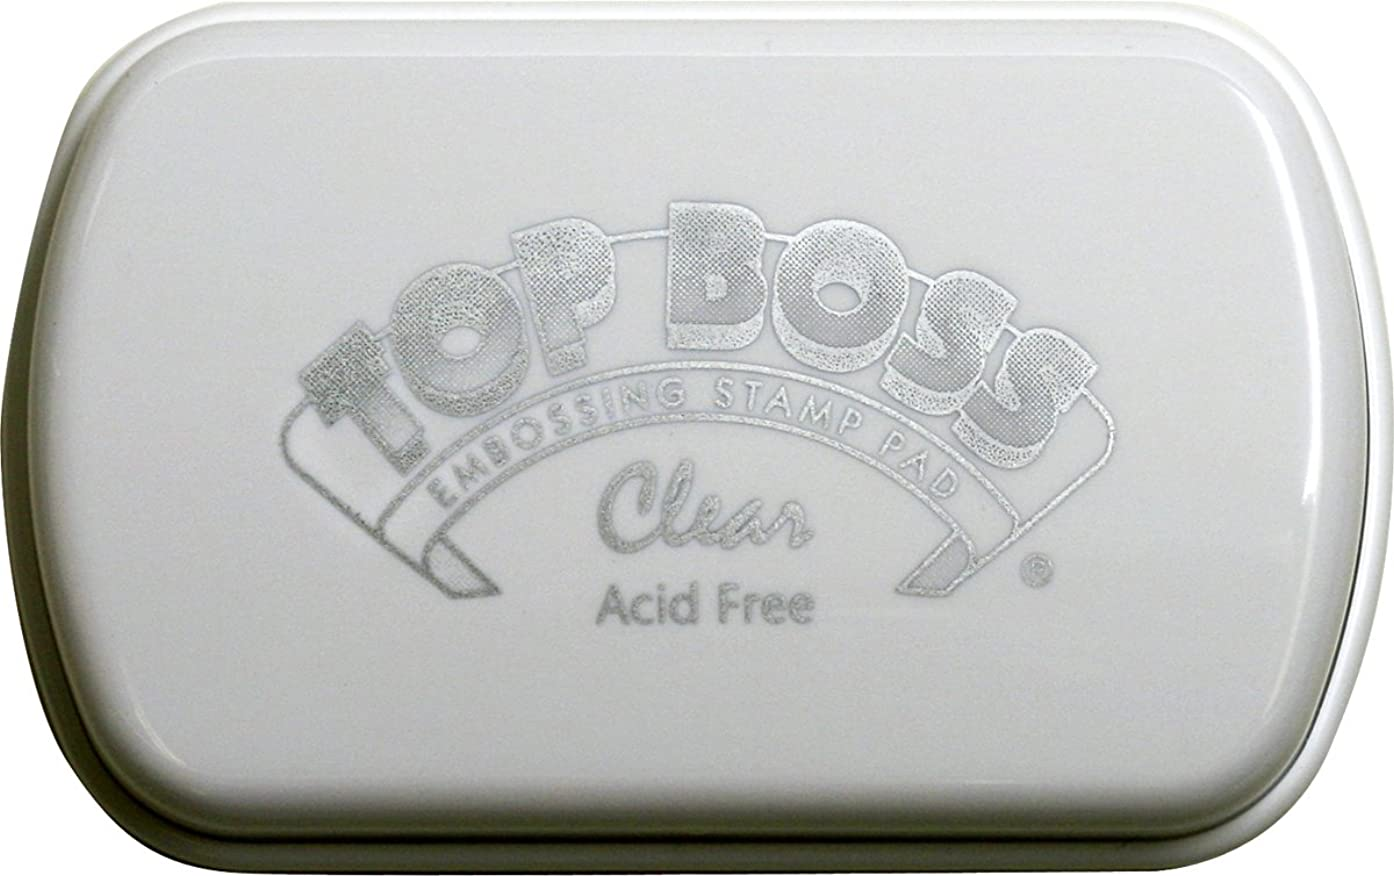 CLEARSNAP Top Boss Full Size Inkpads, Clear